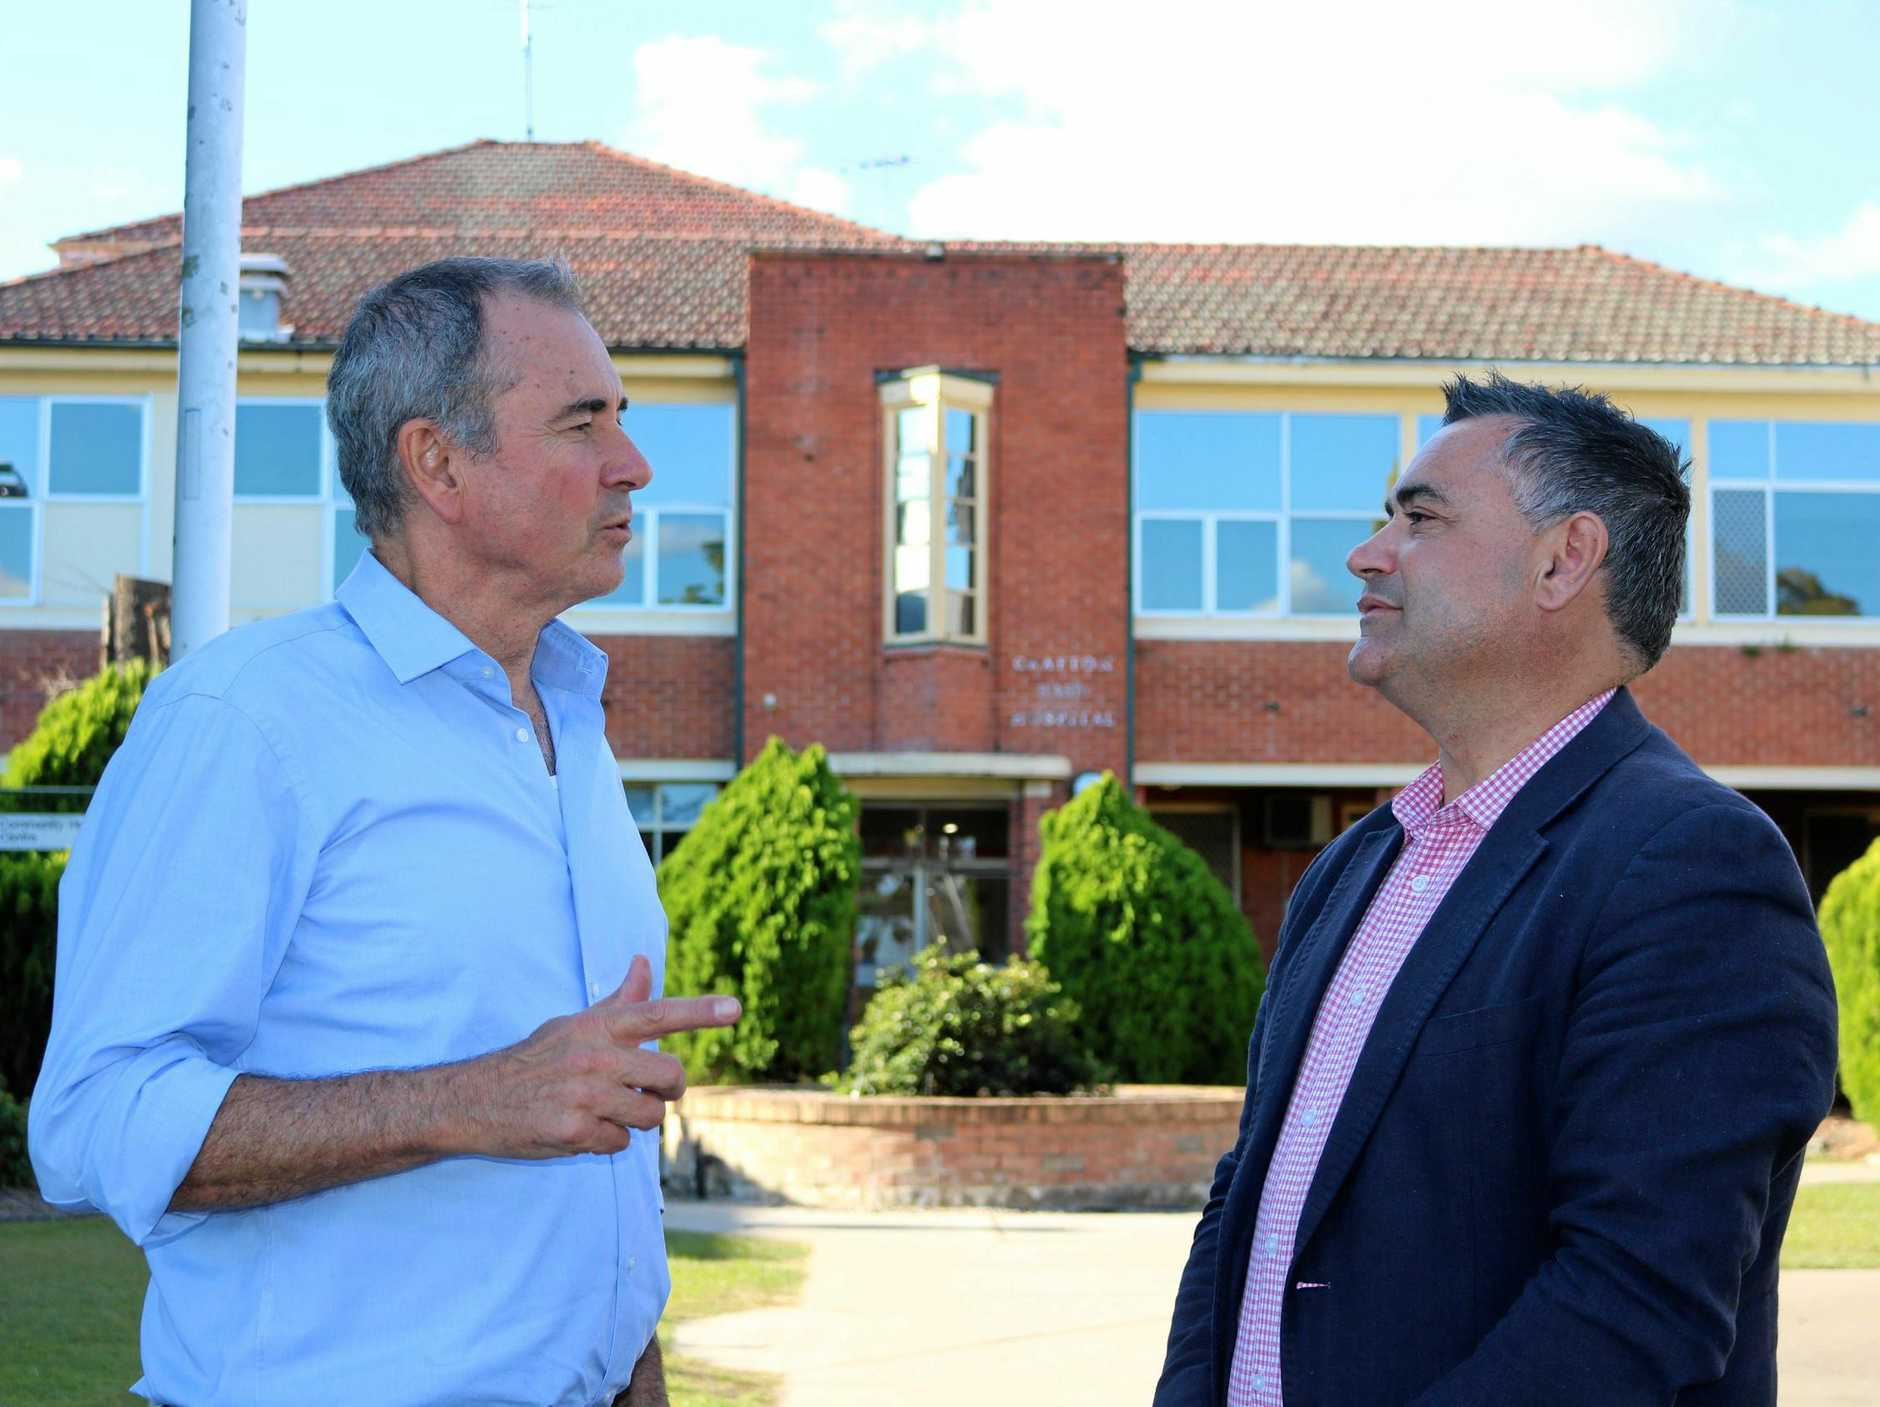 Local MP Chris Gulaptis pictured with Deputy Premier John Barilaro outside Grafton Base Hospital. Mr Barilaro is one of the members of the government who must agree to putting the $263.8 million hospital spend into the budget.